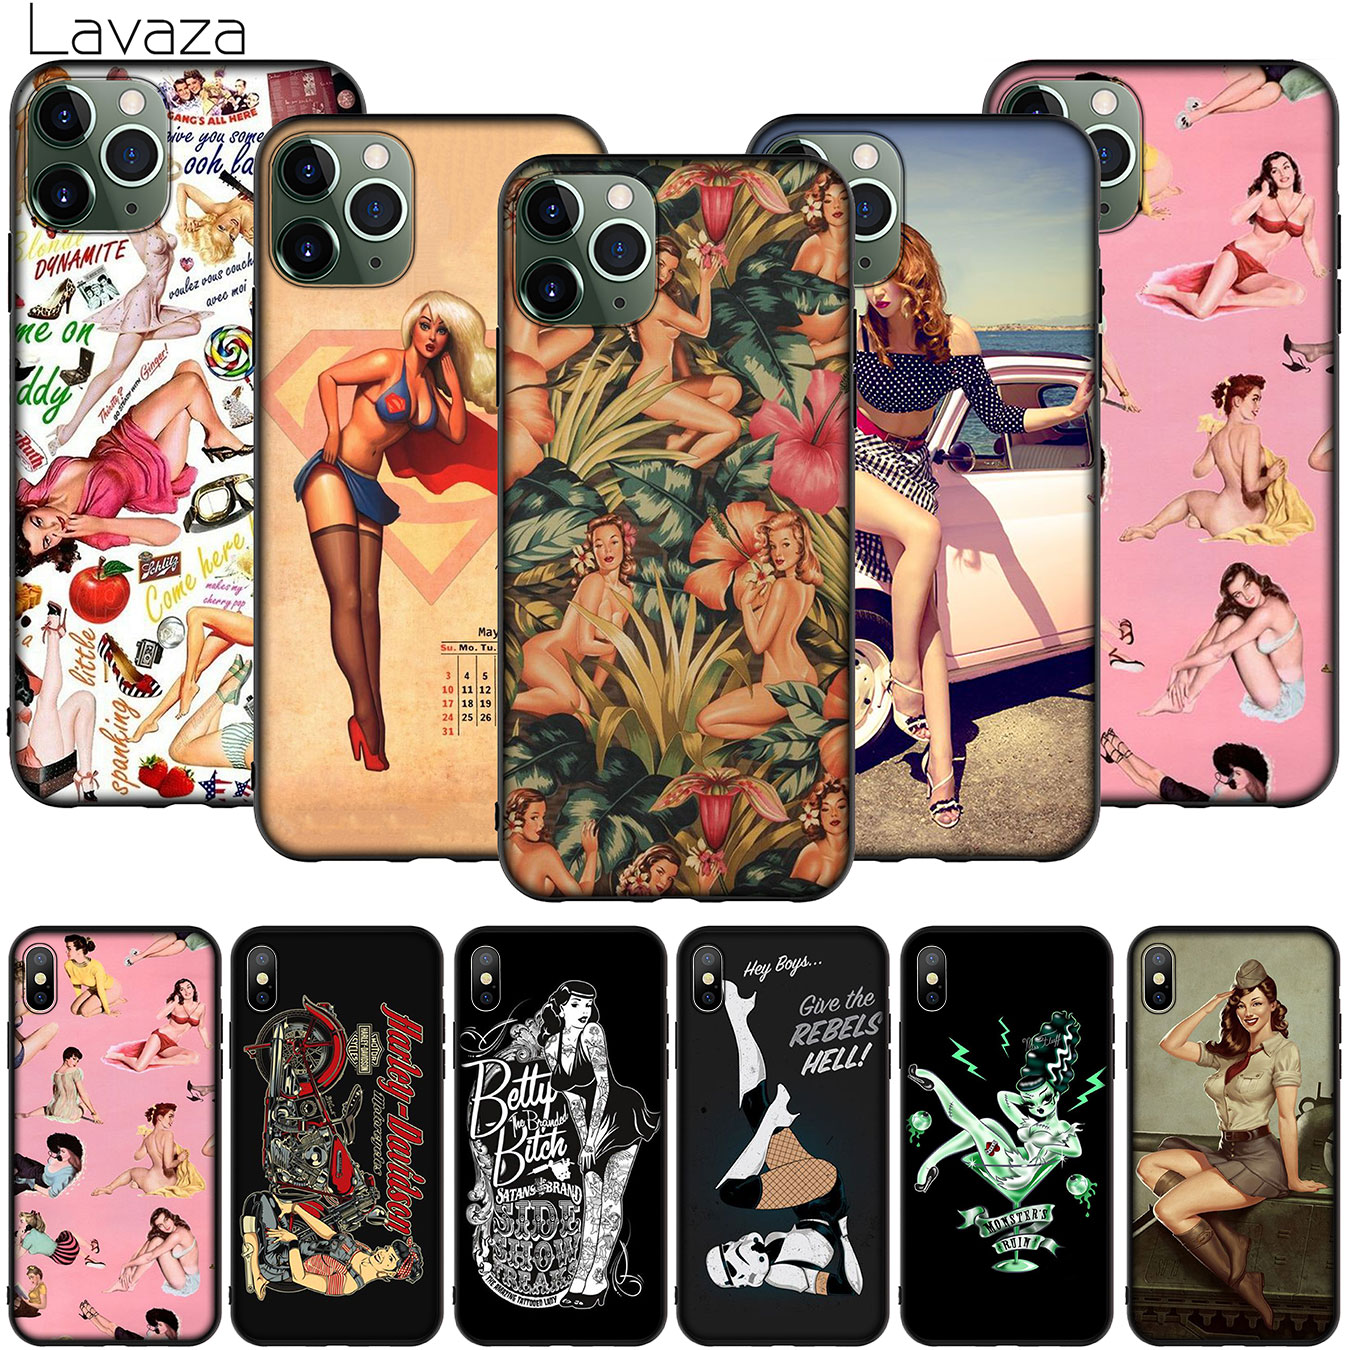 PinUp Girls Pin Up Girl Soft Silicone Cover for iPhone 12 Mini 11 Pro XR X XS Max 7 8 6 6S Plus 5 5S SE 2020 Phone Case